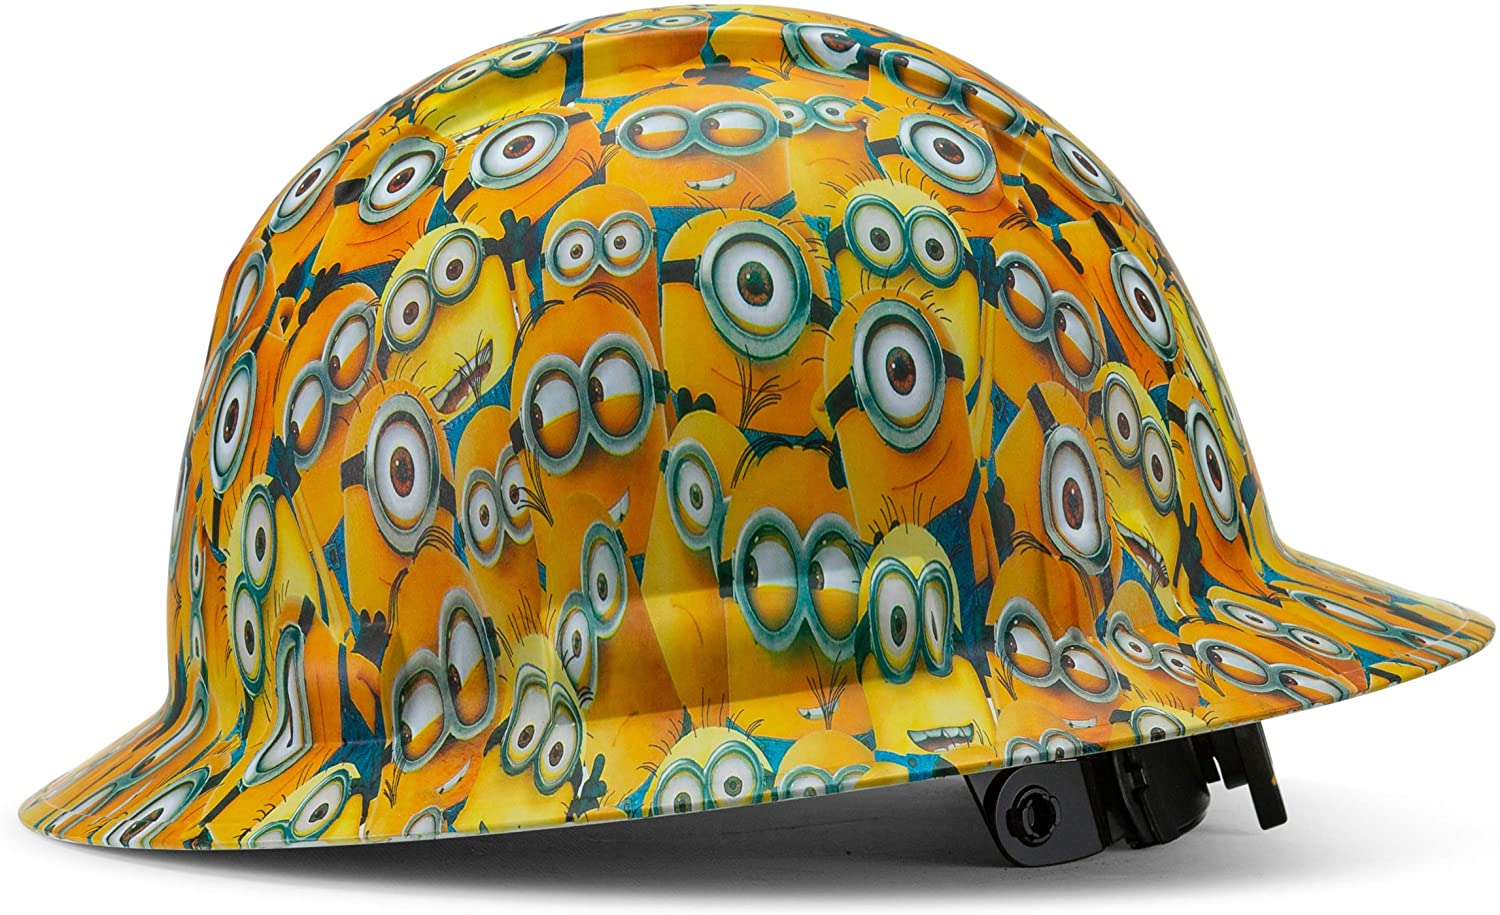 Pyramex Full Brim Hard Hat with Minions Design, 4 Point Suspension, by Acerpal